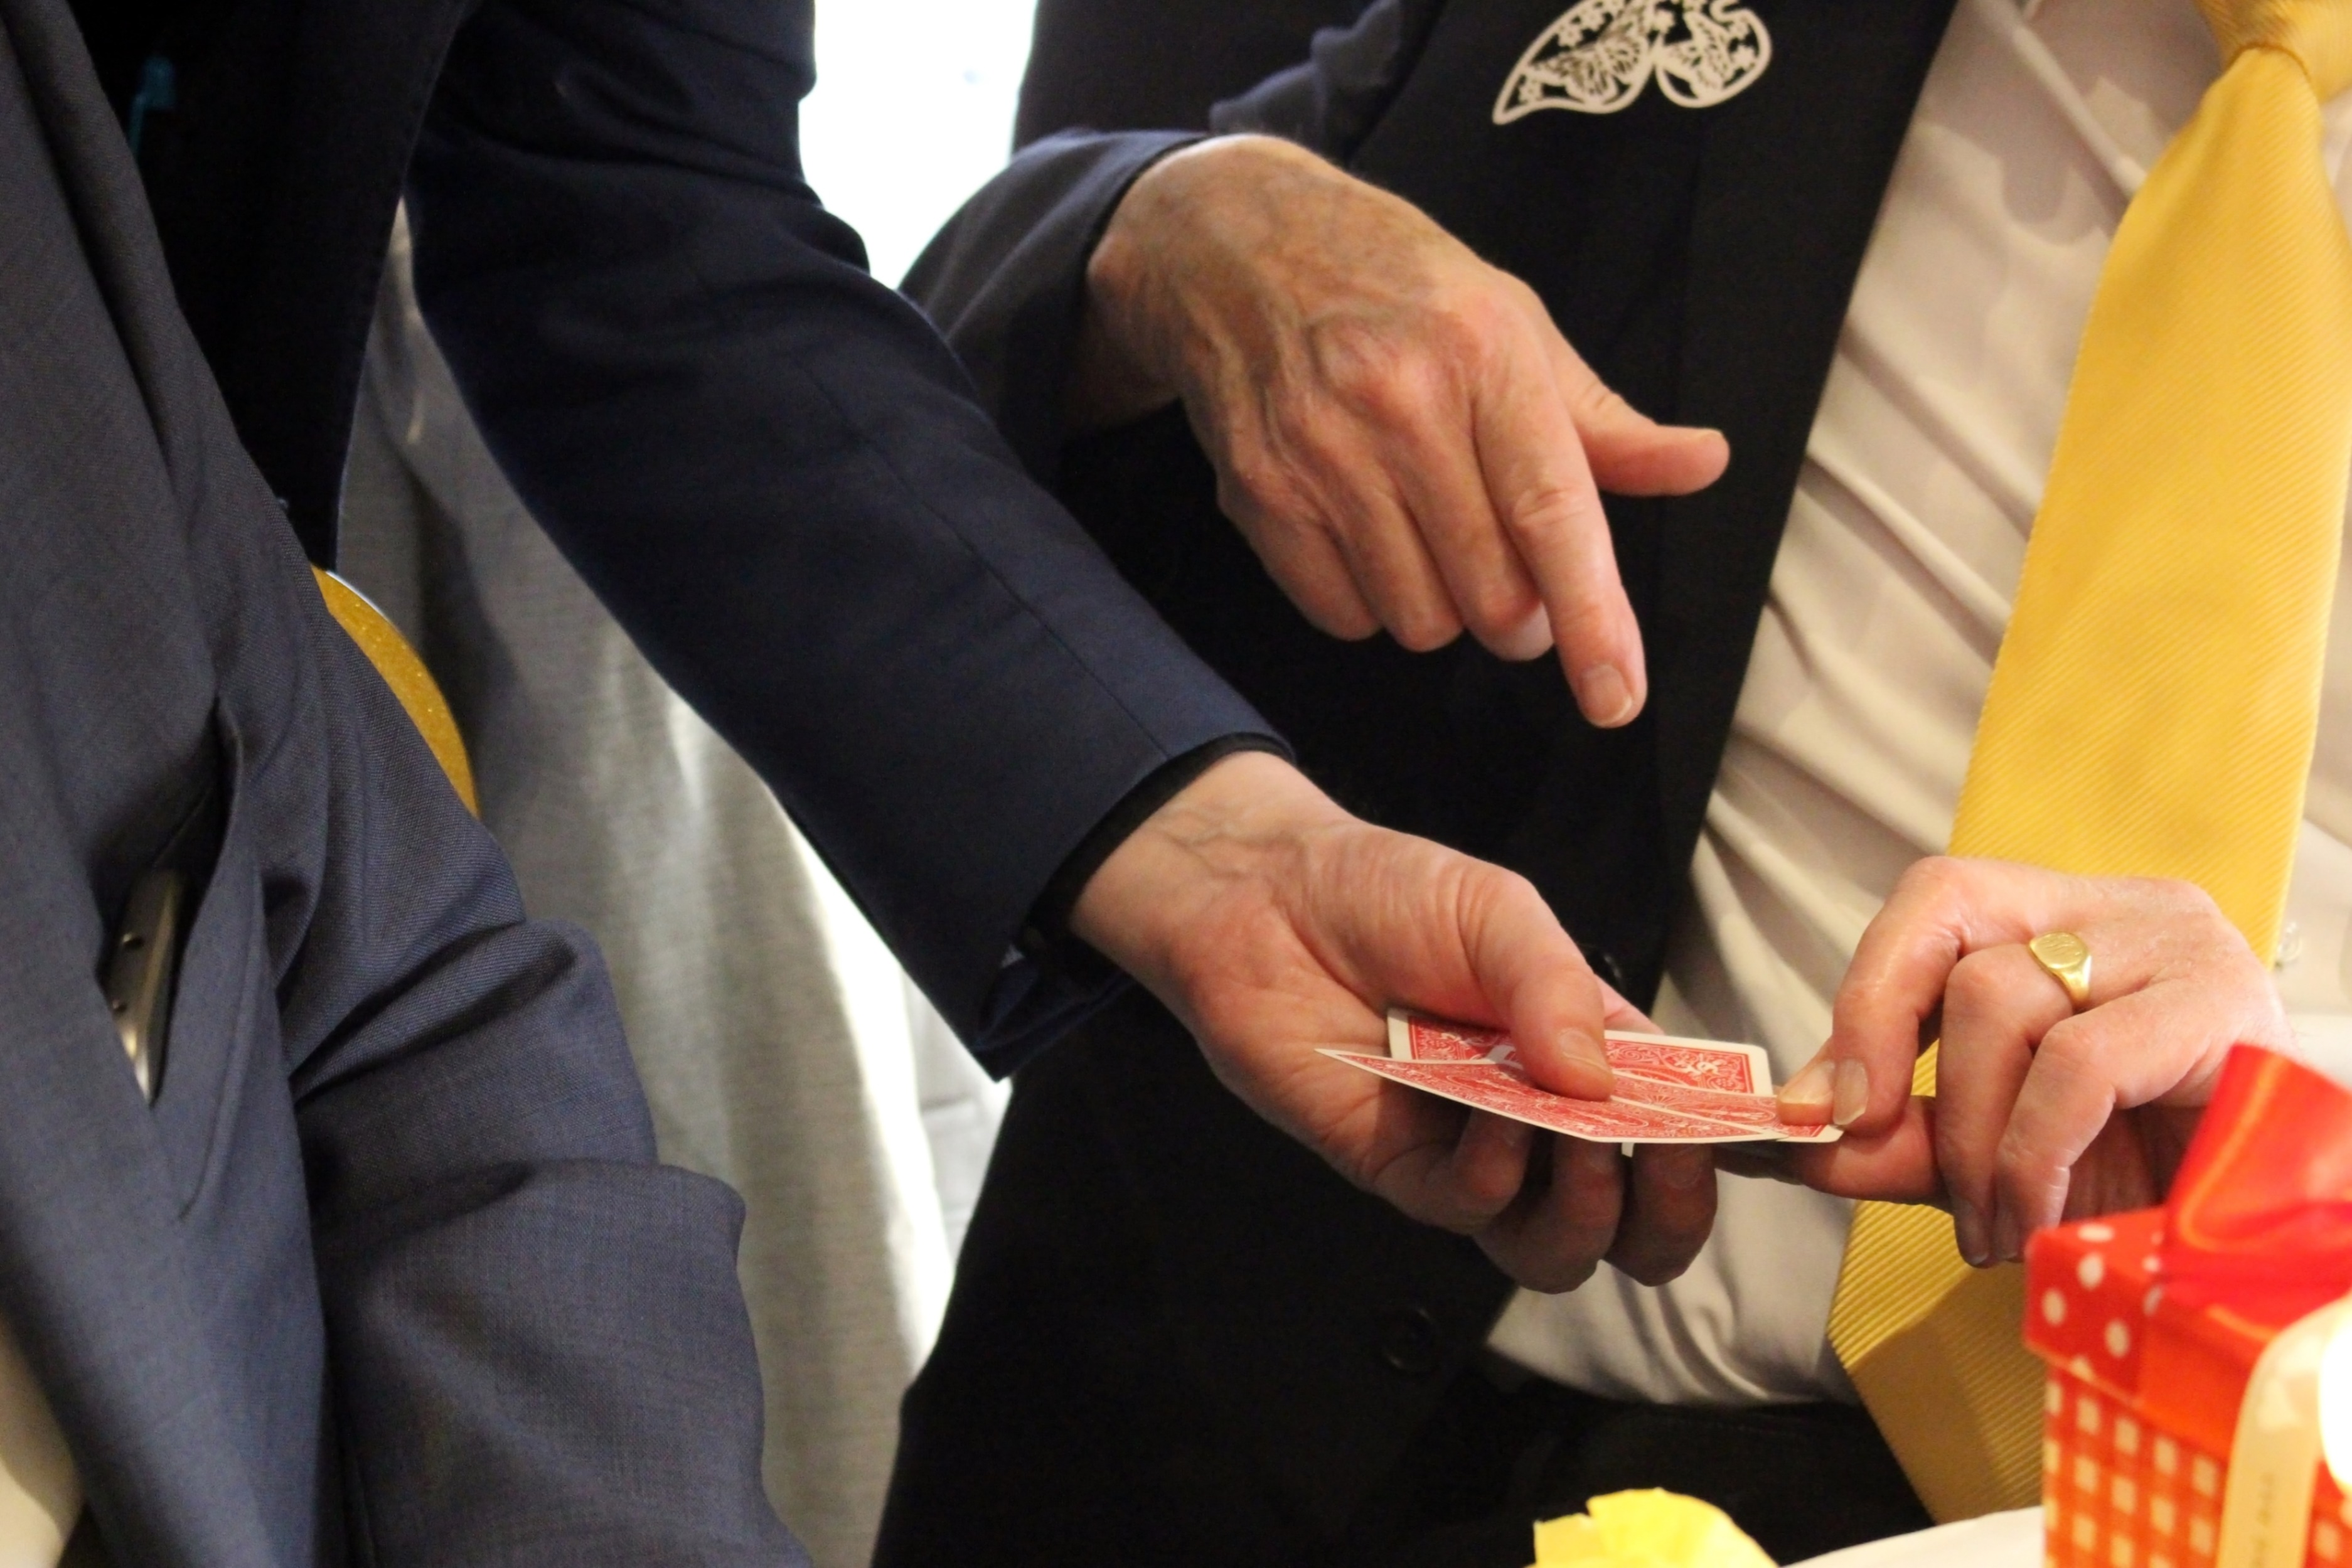 Magician gets a man to pick a card, Card, Male, Take, Suit, HQ Photo